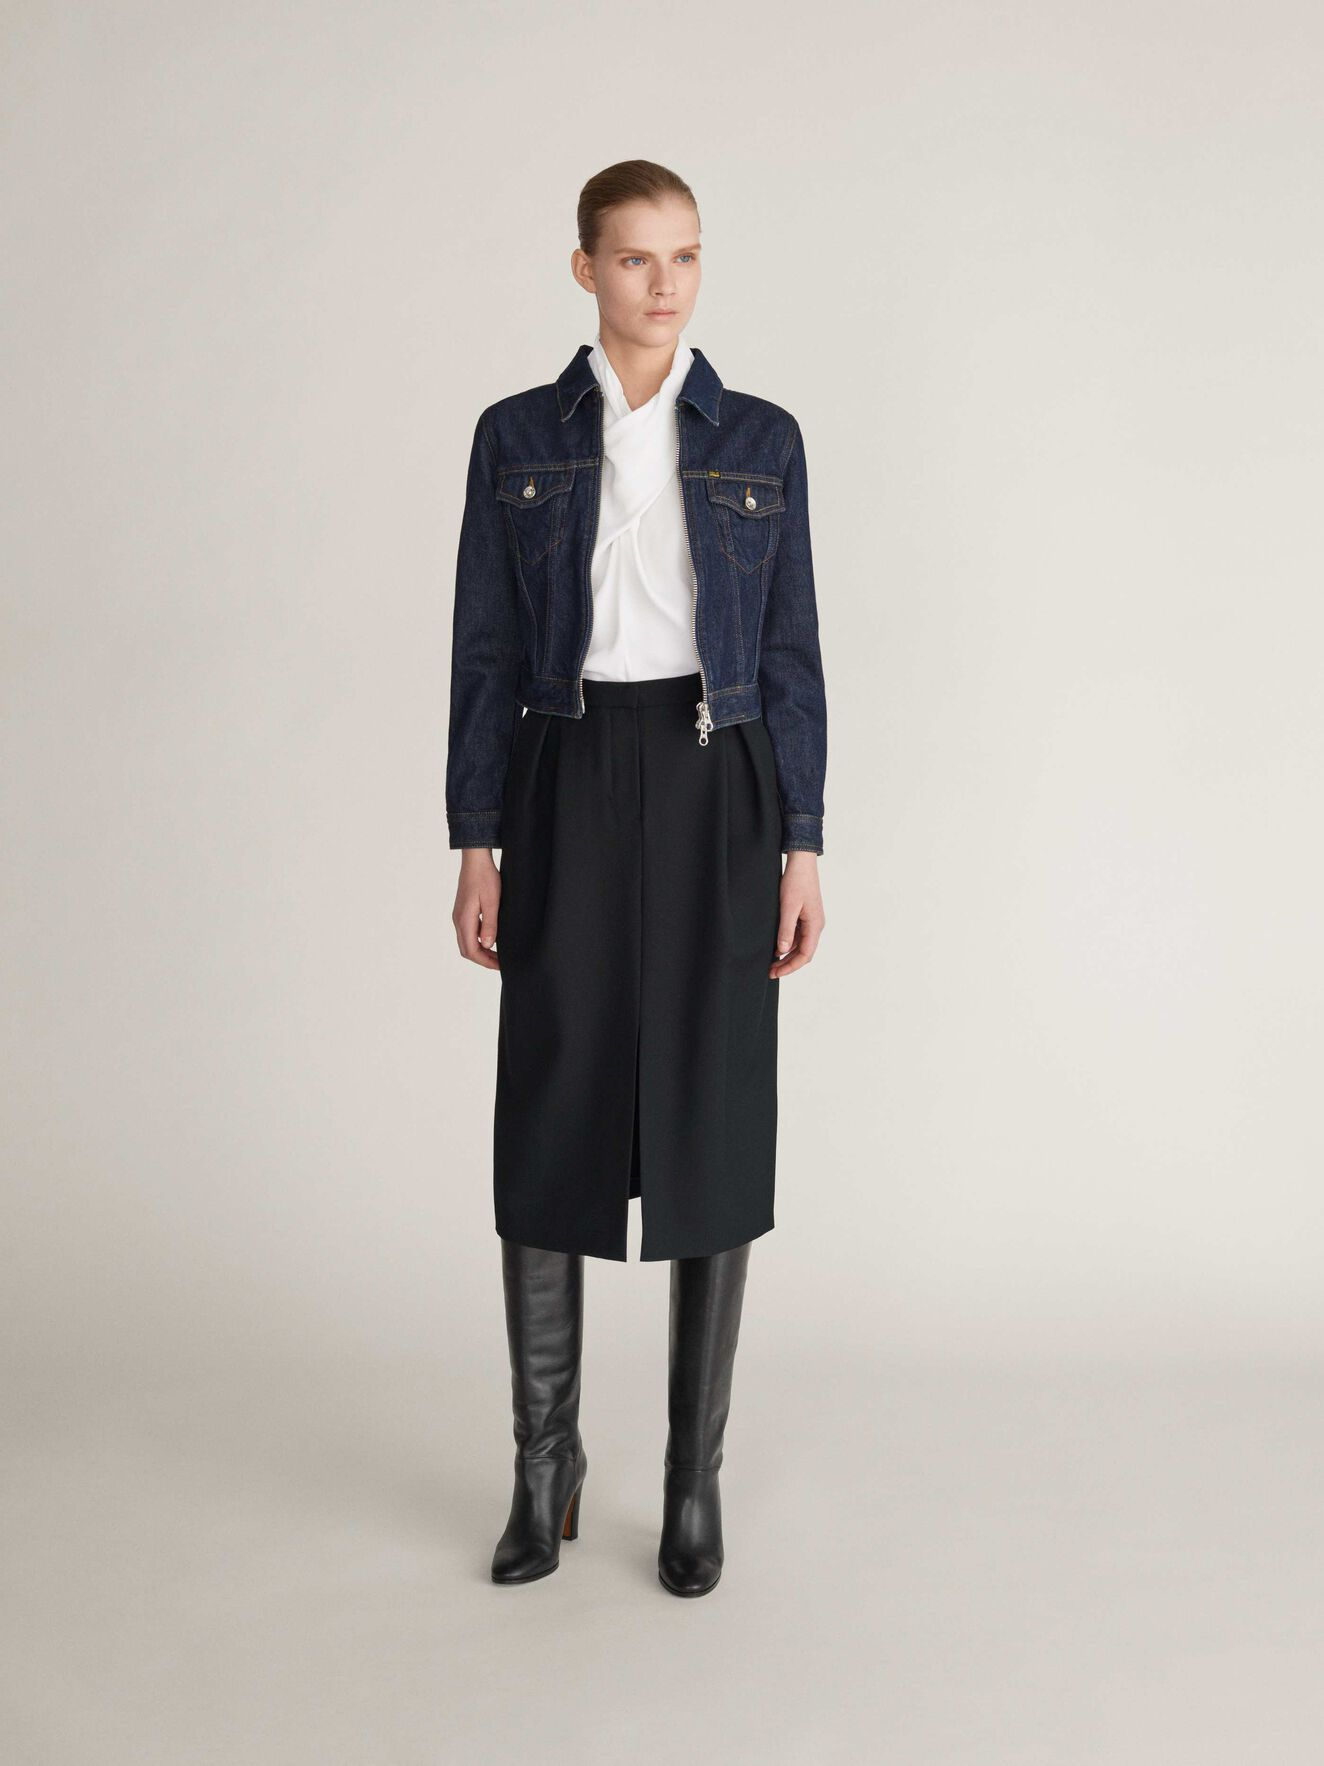 Laara Skirt in Midnight Black from Tiger of Sweden